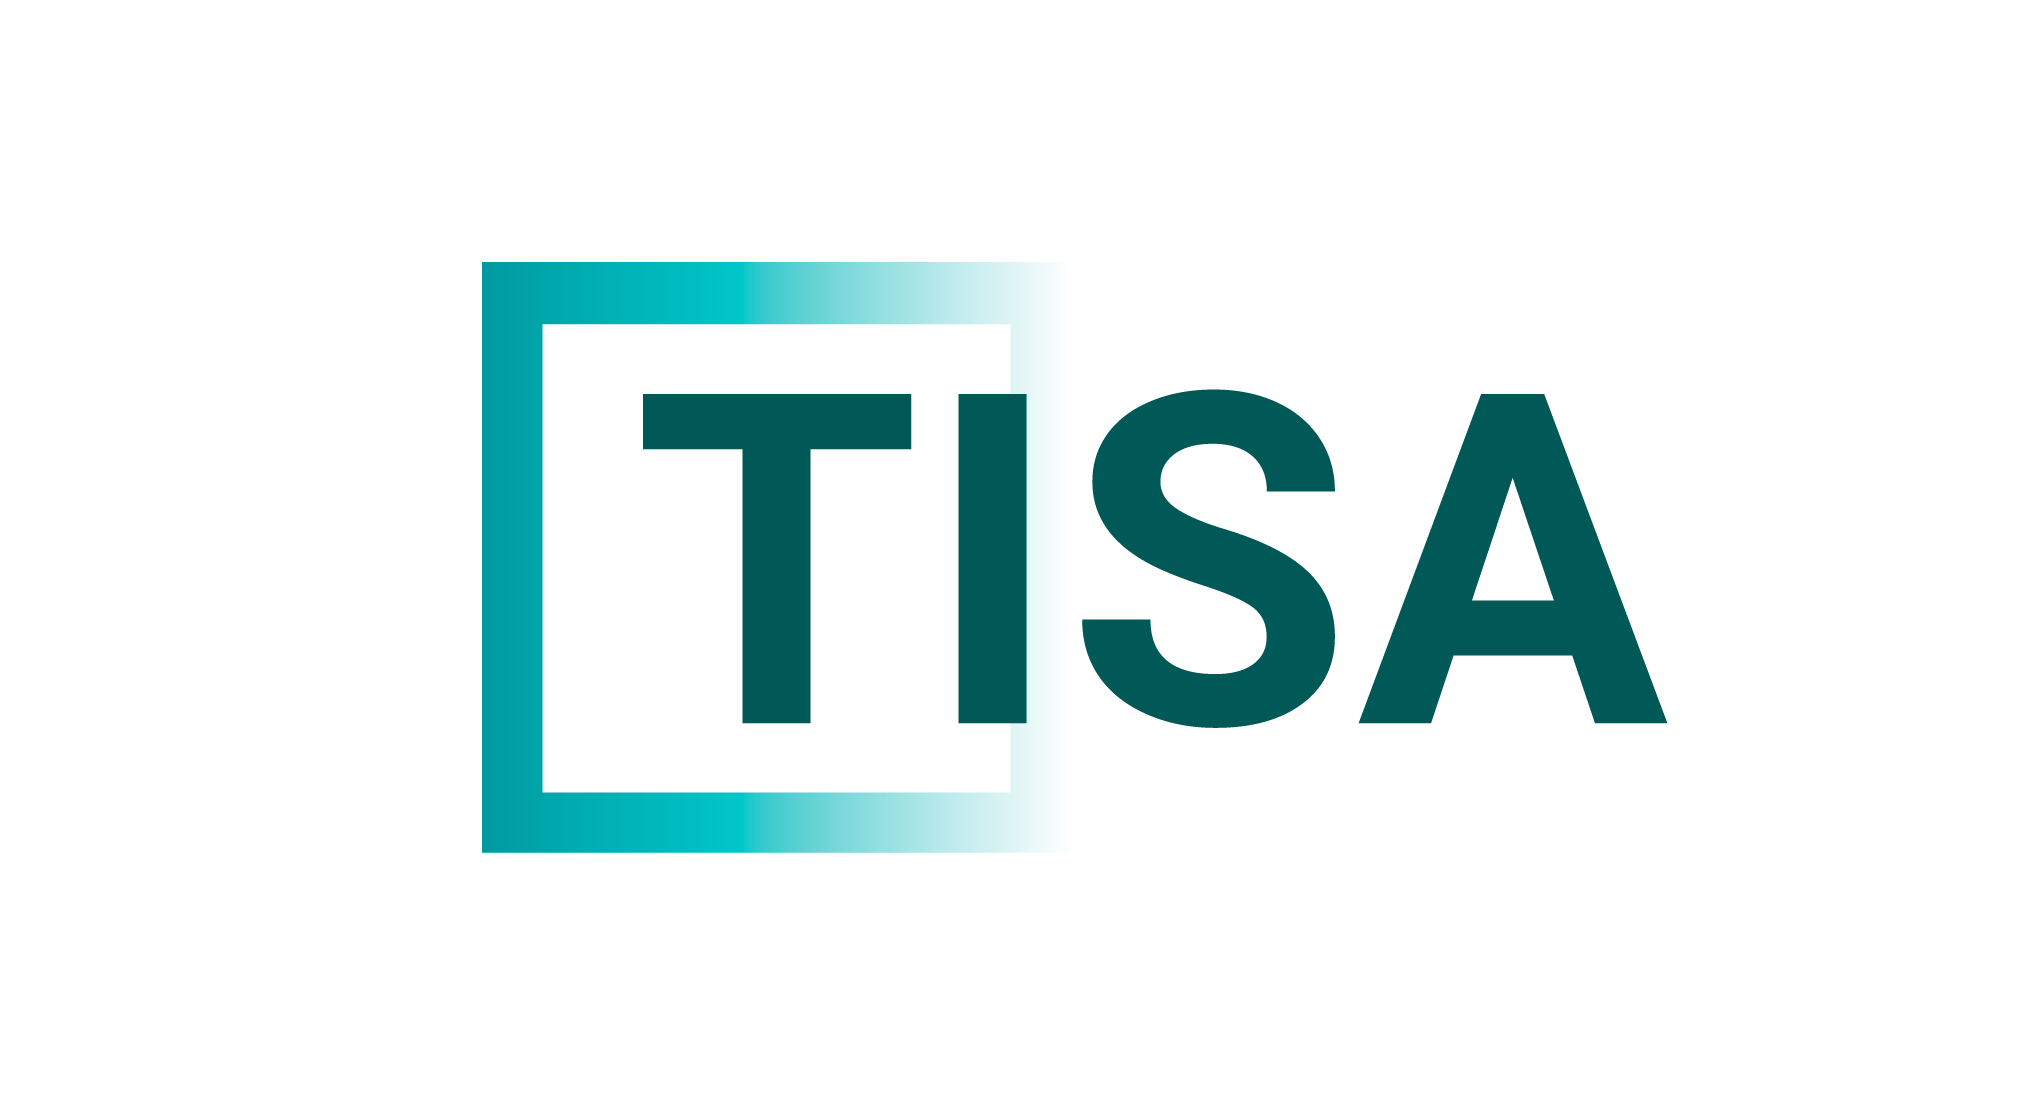 """The """"Gender Confidence Gap"""" is affecting UK Savers' Ability to Invest or Save, According to TISA and EY Research"""